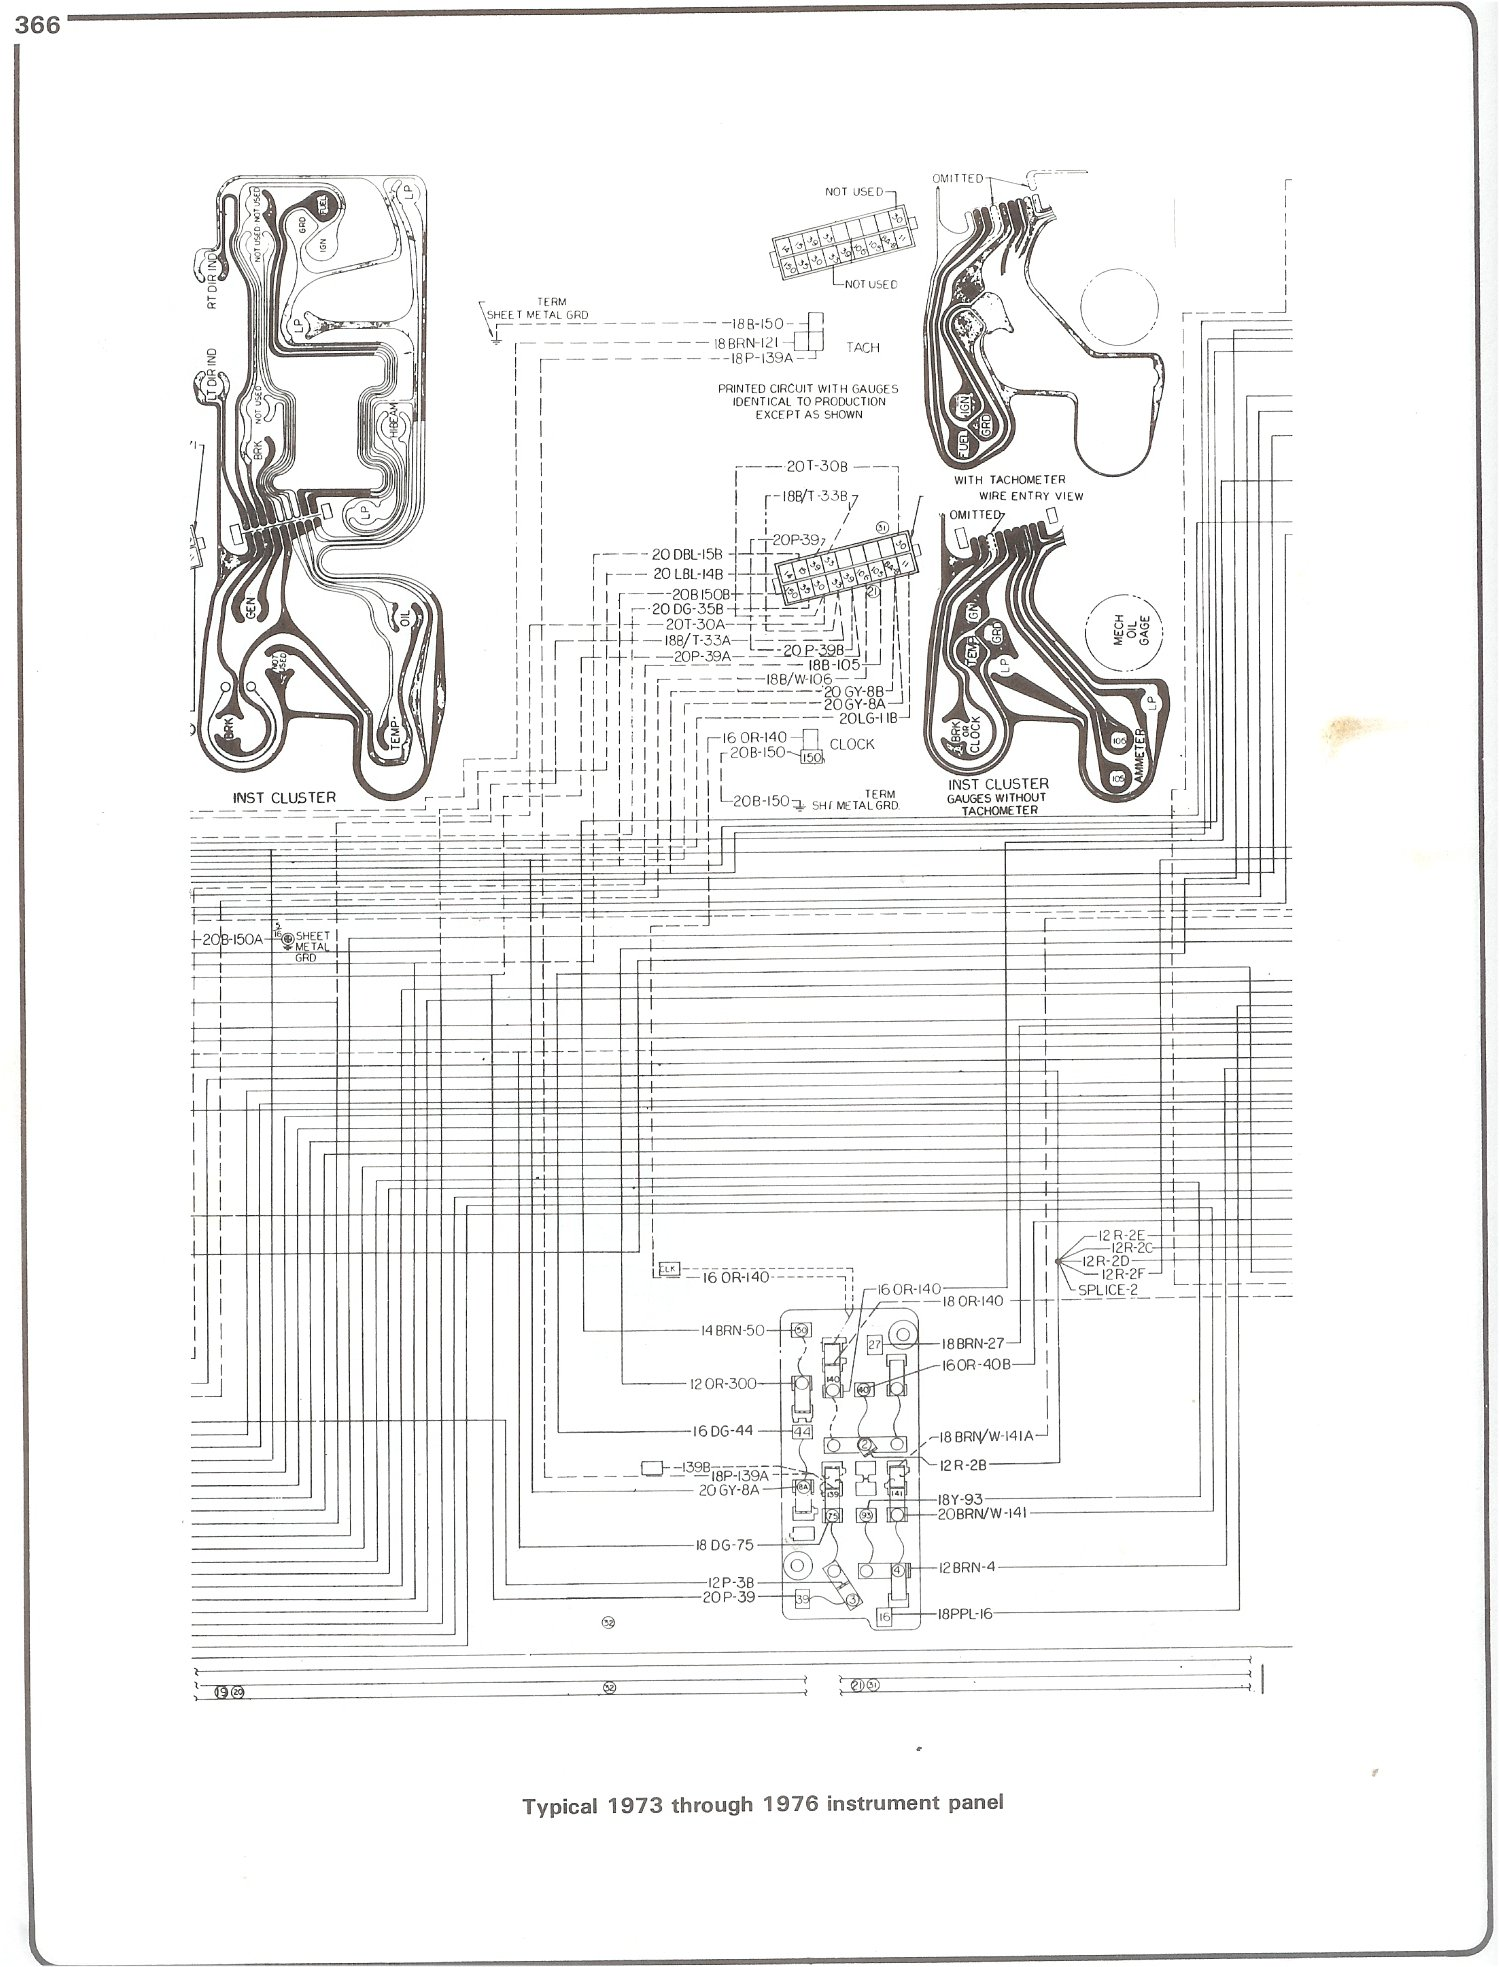 73 76_instrument complete 73 87 wiring diagrams 1968 Chevy C10 Wiring-Diagram at fashall.co